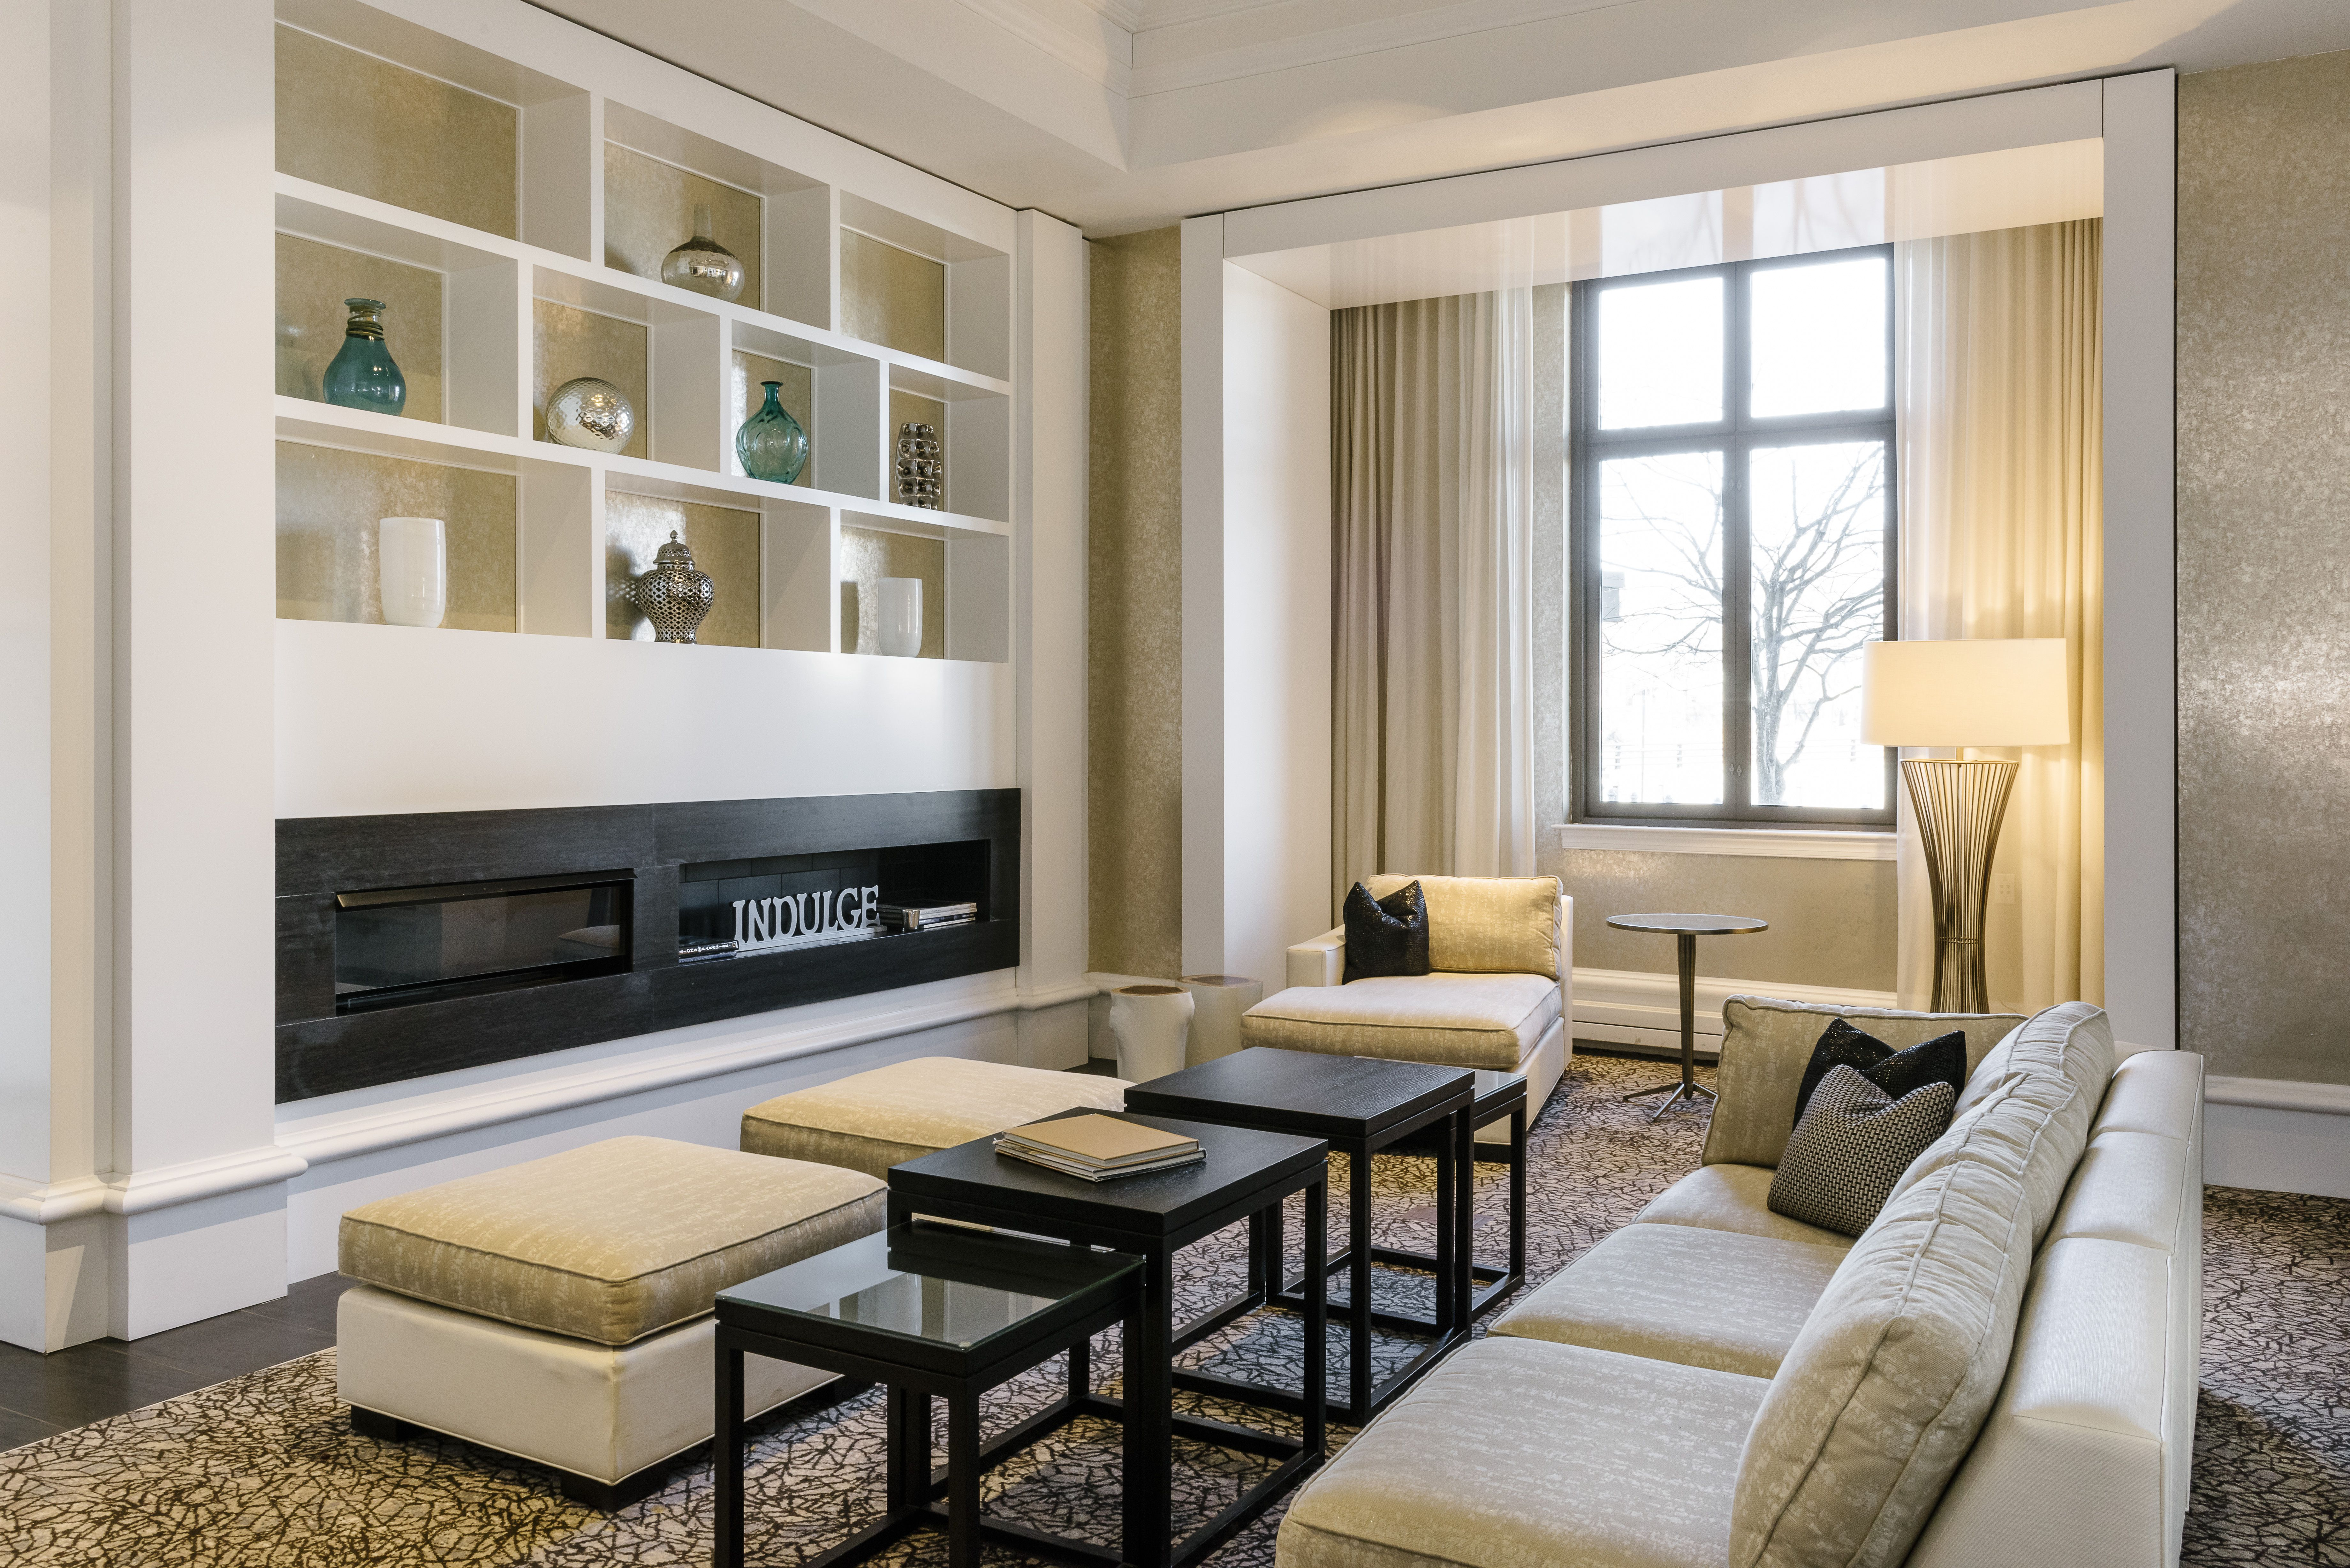 Renaissance Providence Designed By New York Based Boutique Interior Design Firm Krause Sawyer